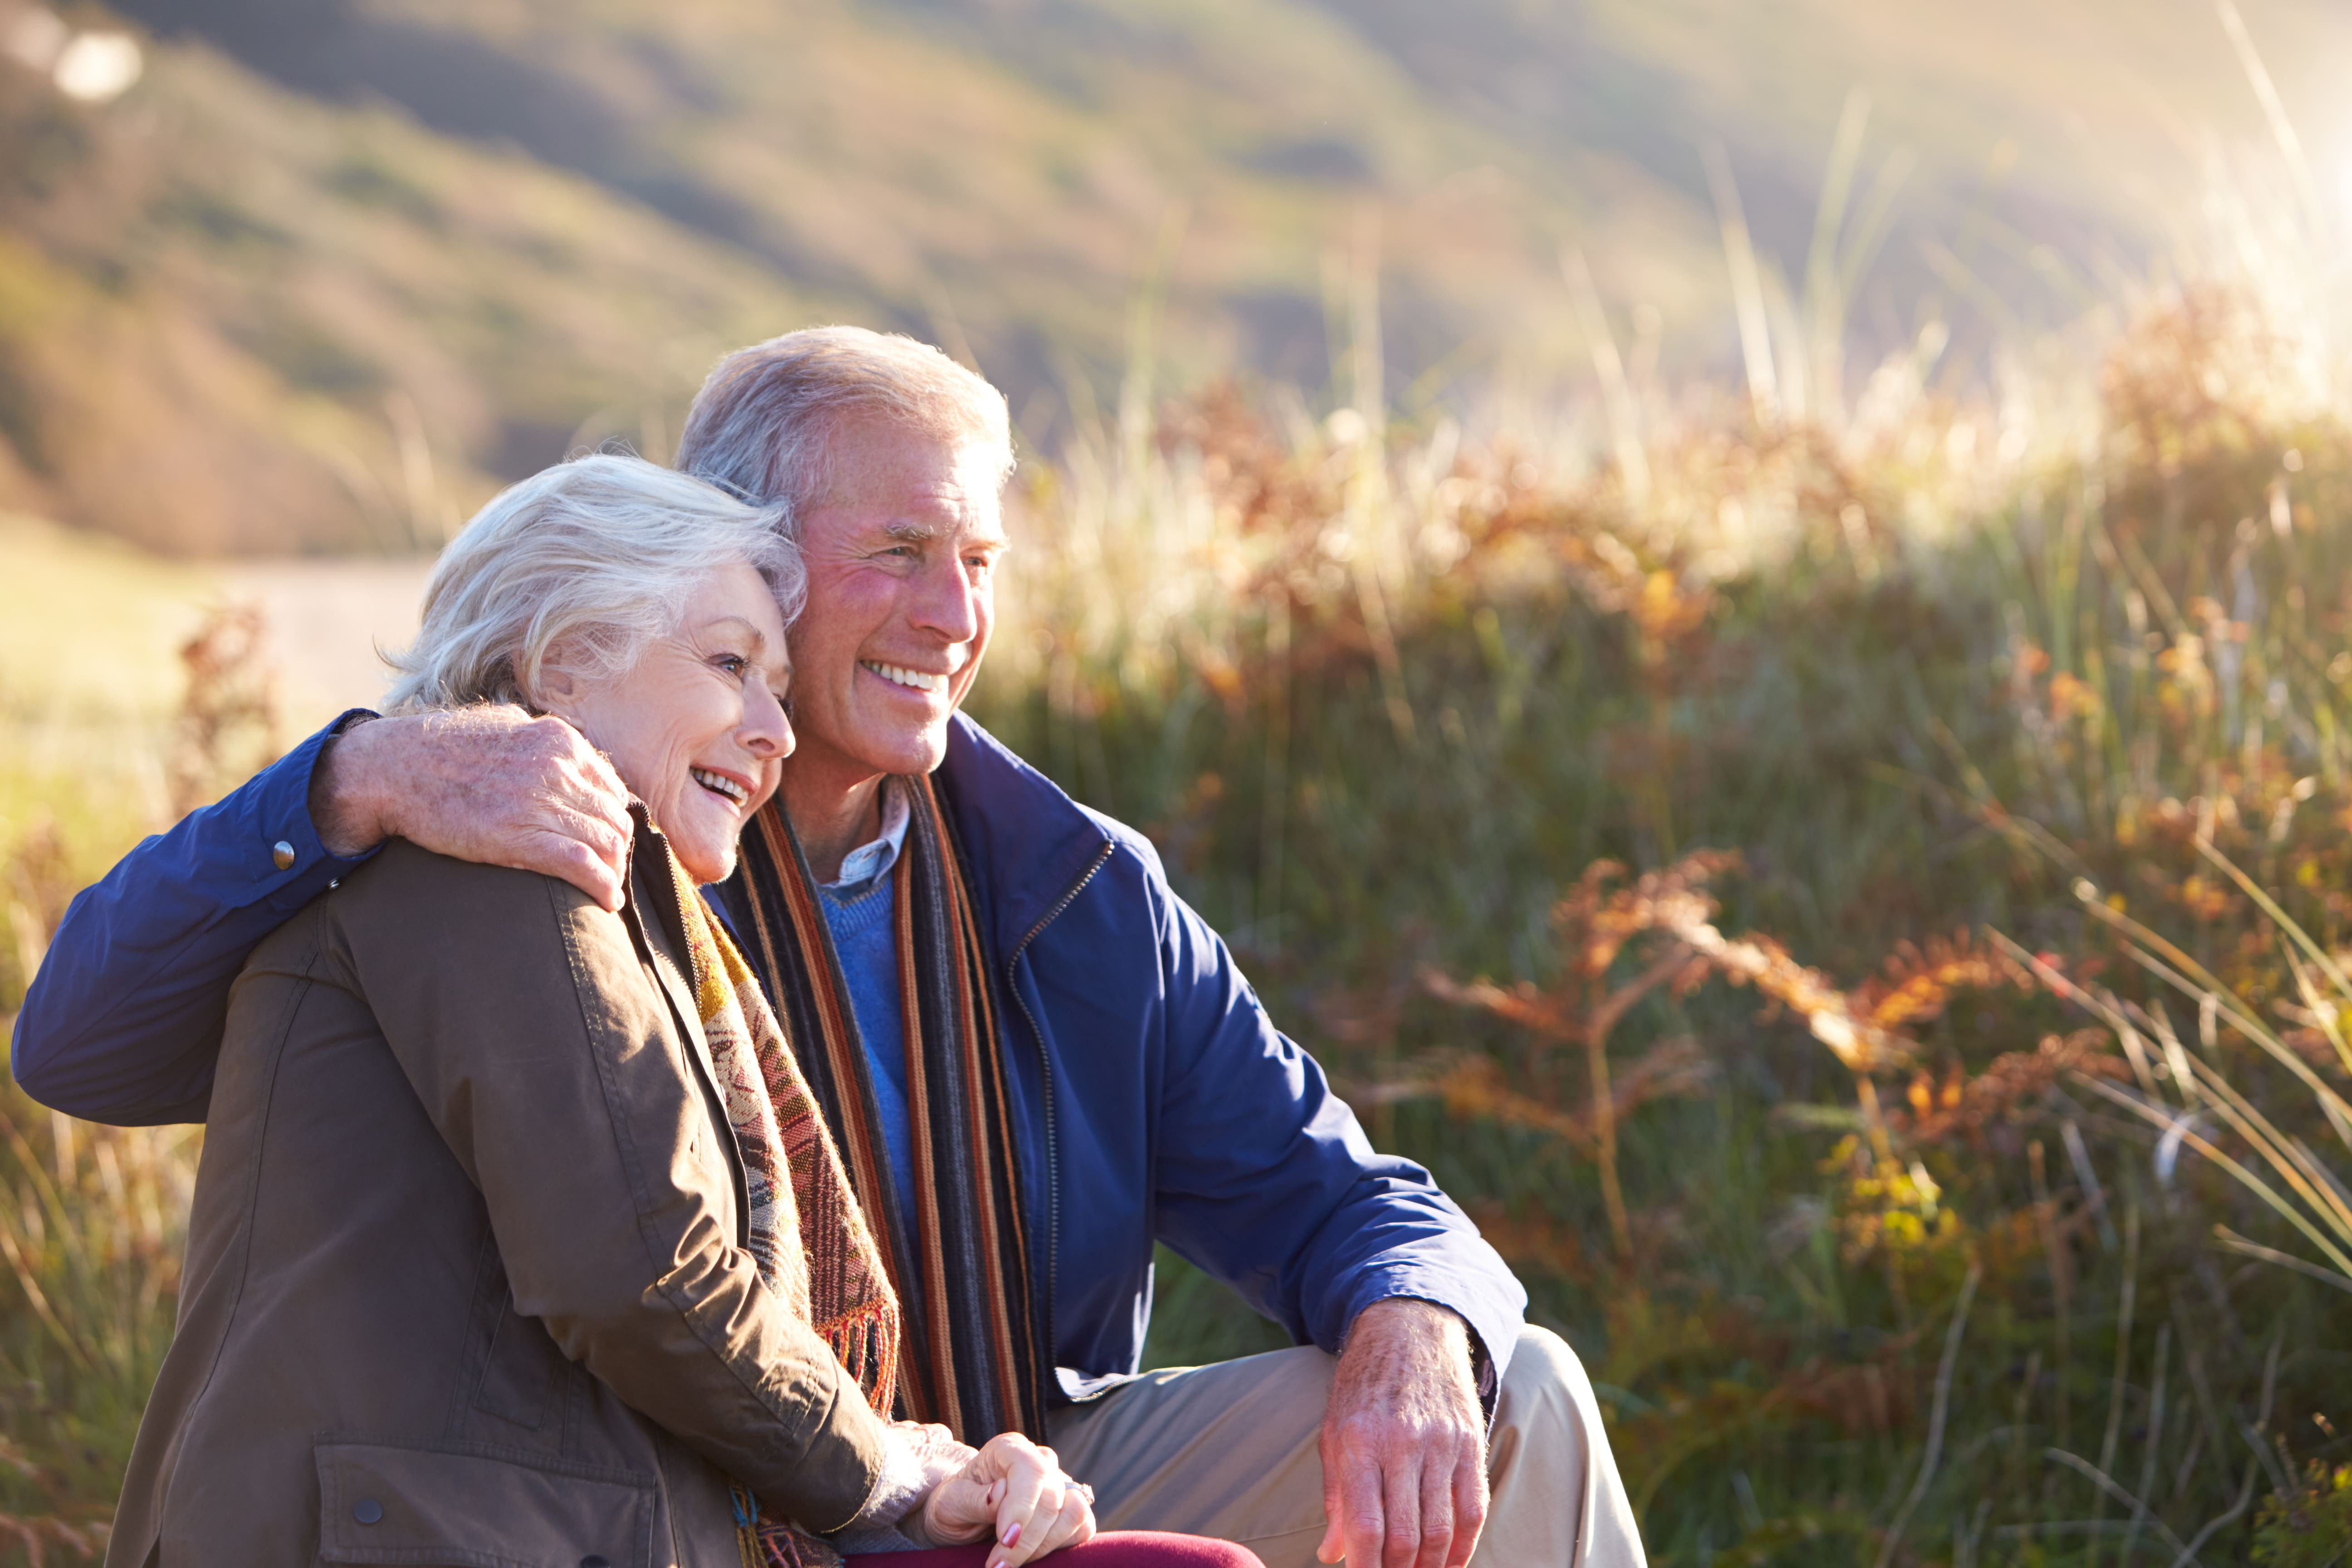 4 Great Staycation Ideas Seniors Might Consider